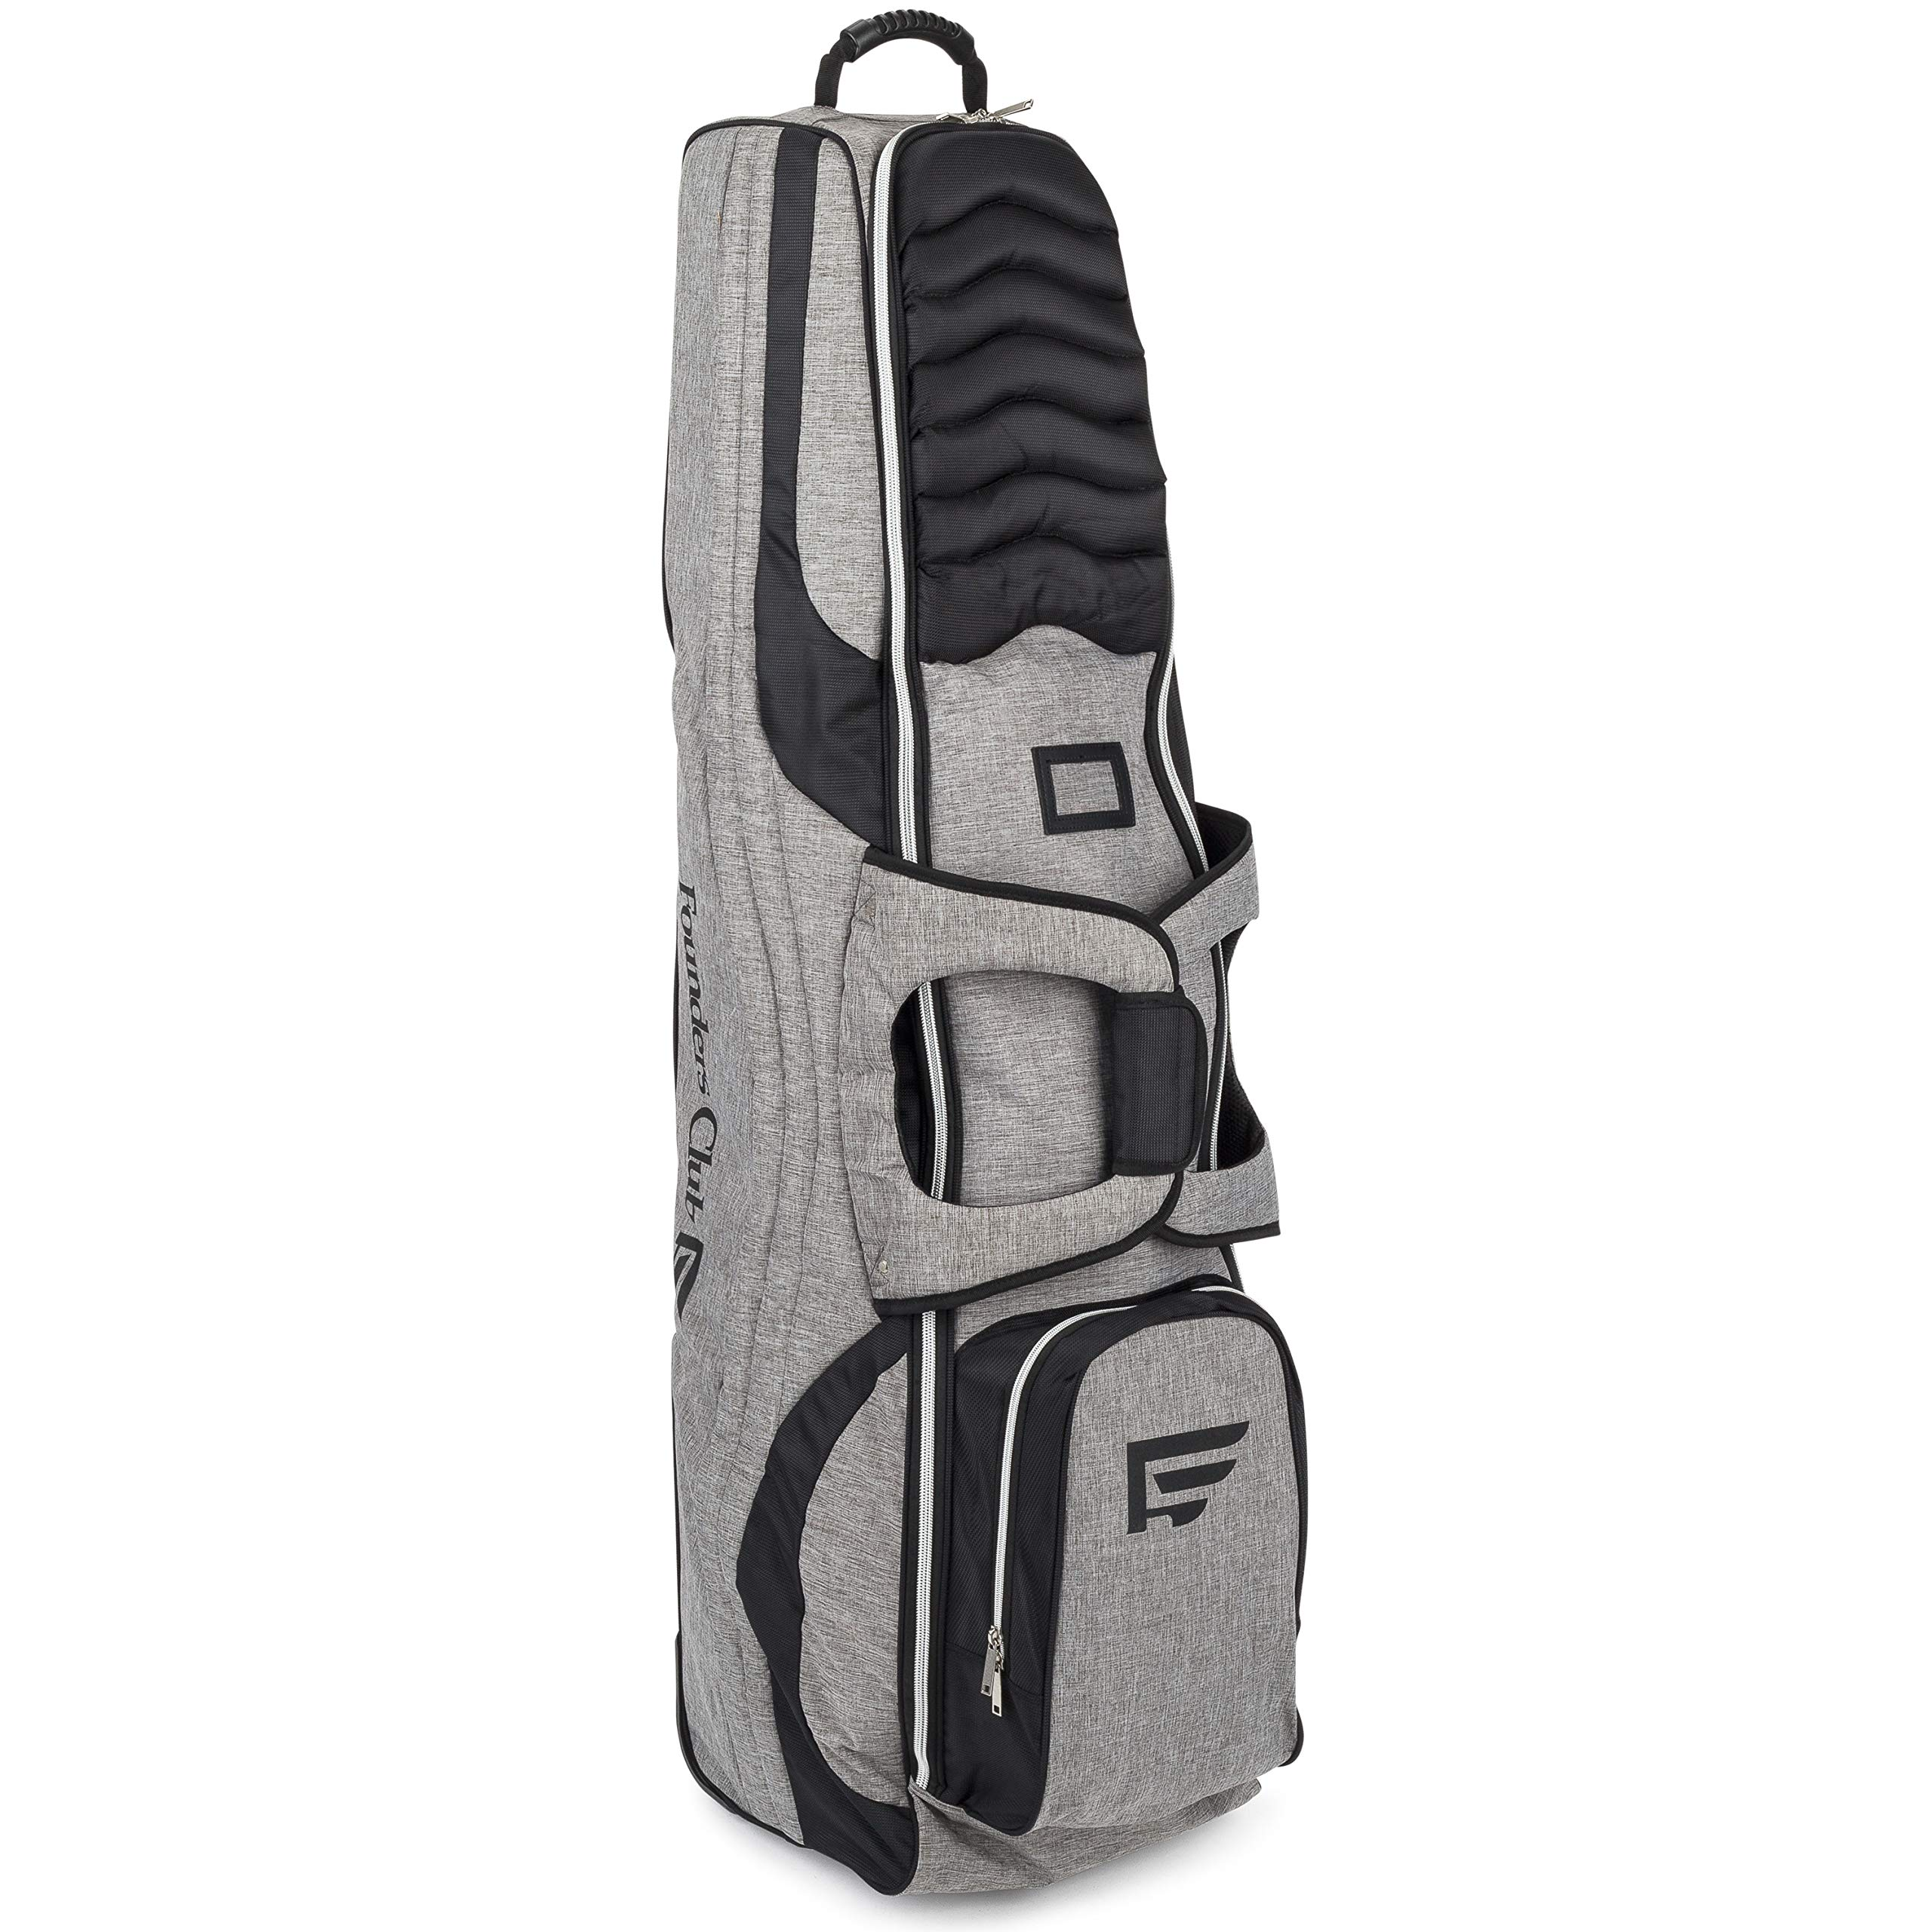 Founders Club Golf Travel Bag Travel Cover Luggage for Golf Clubs with Padded Club Protection by Founders Club